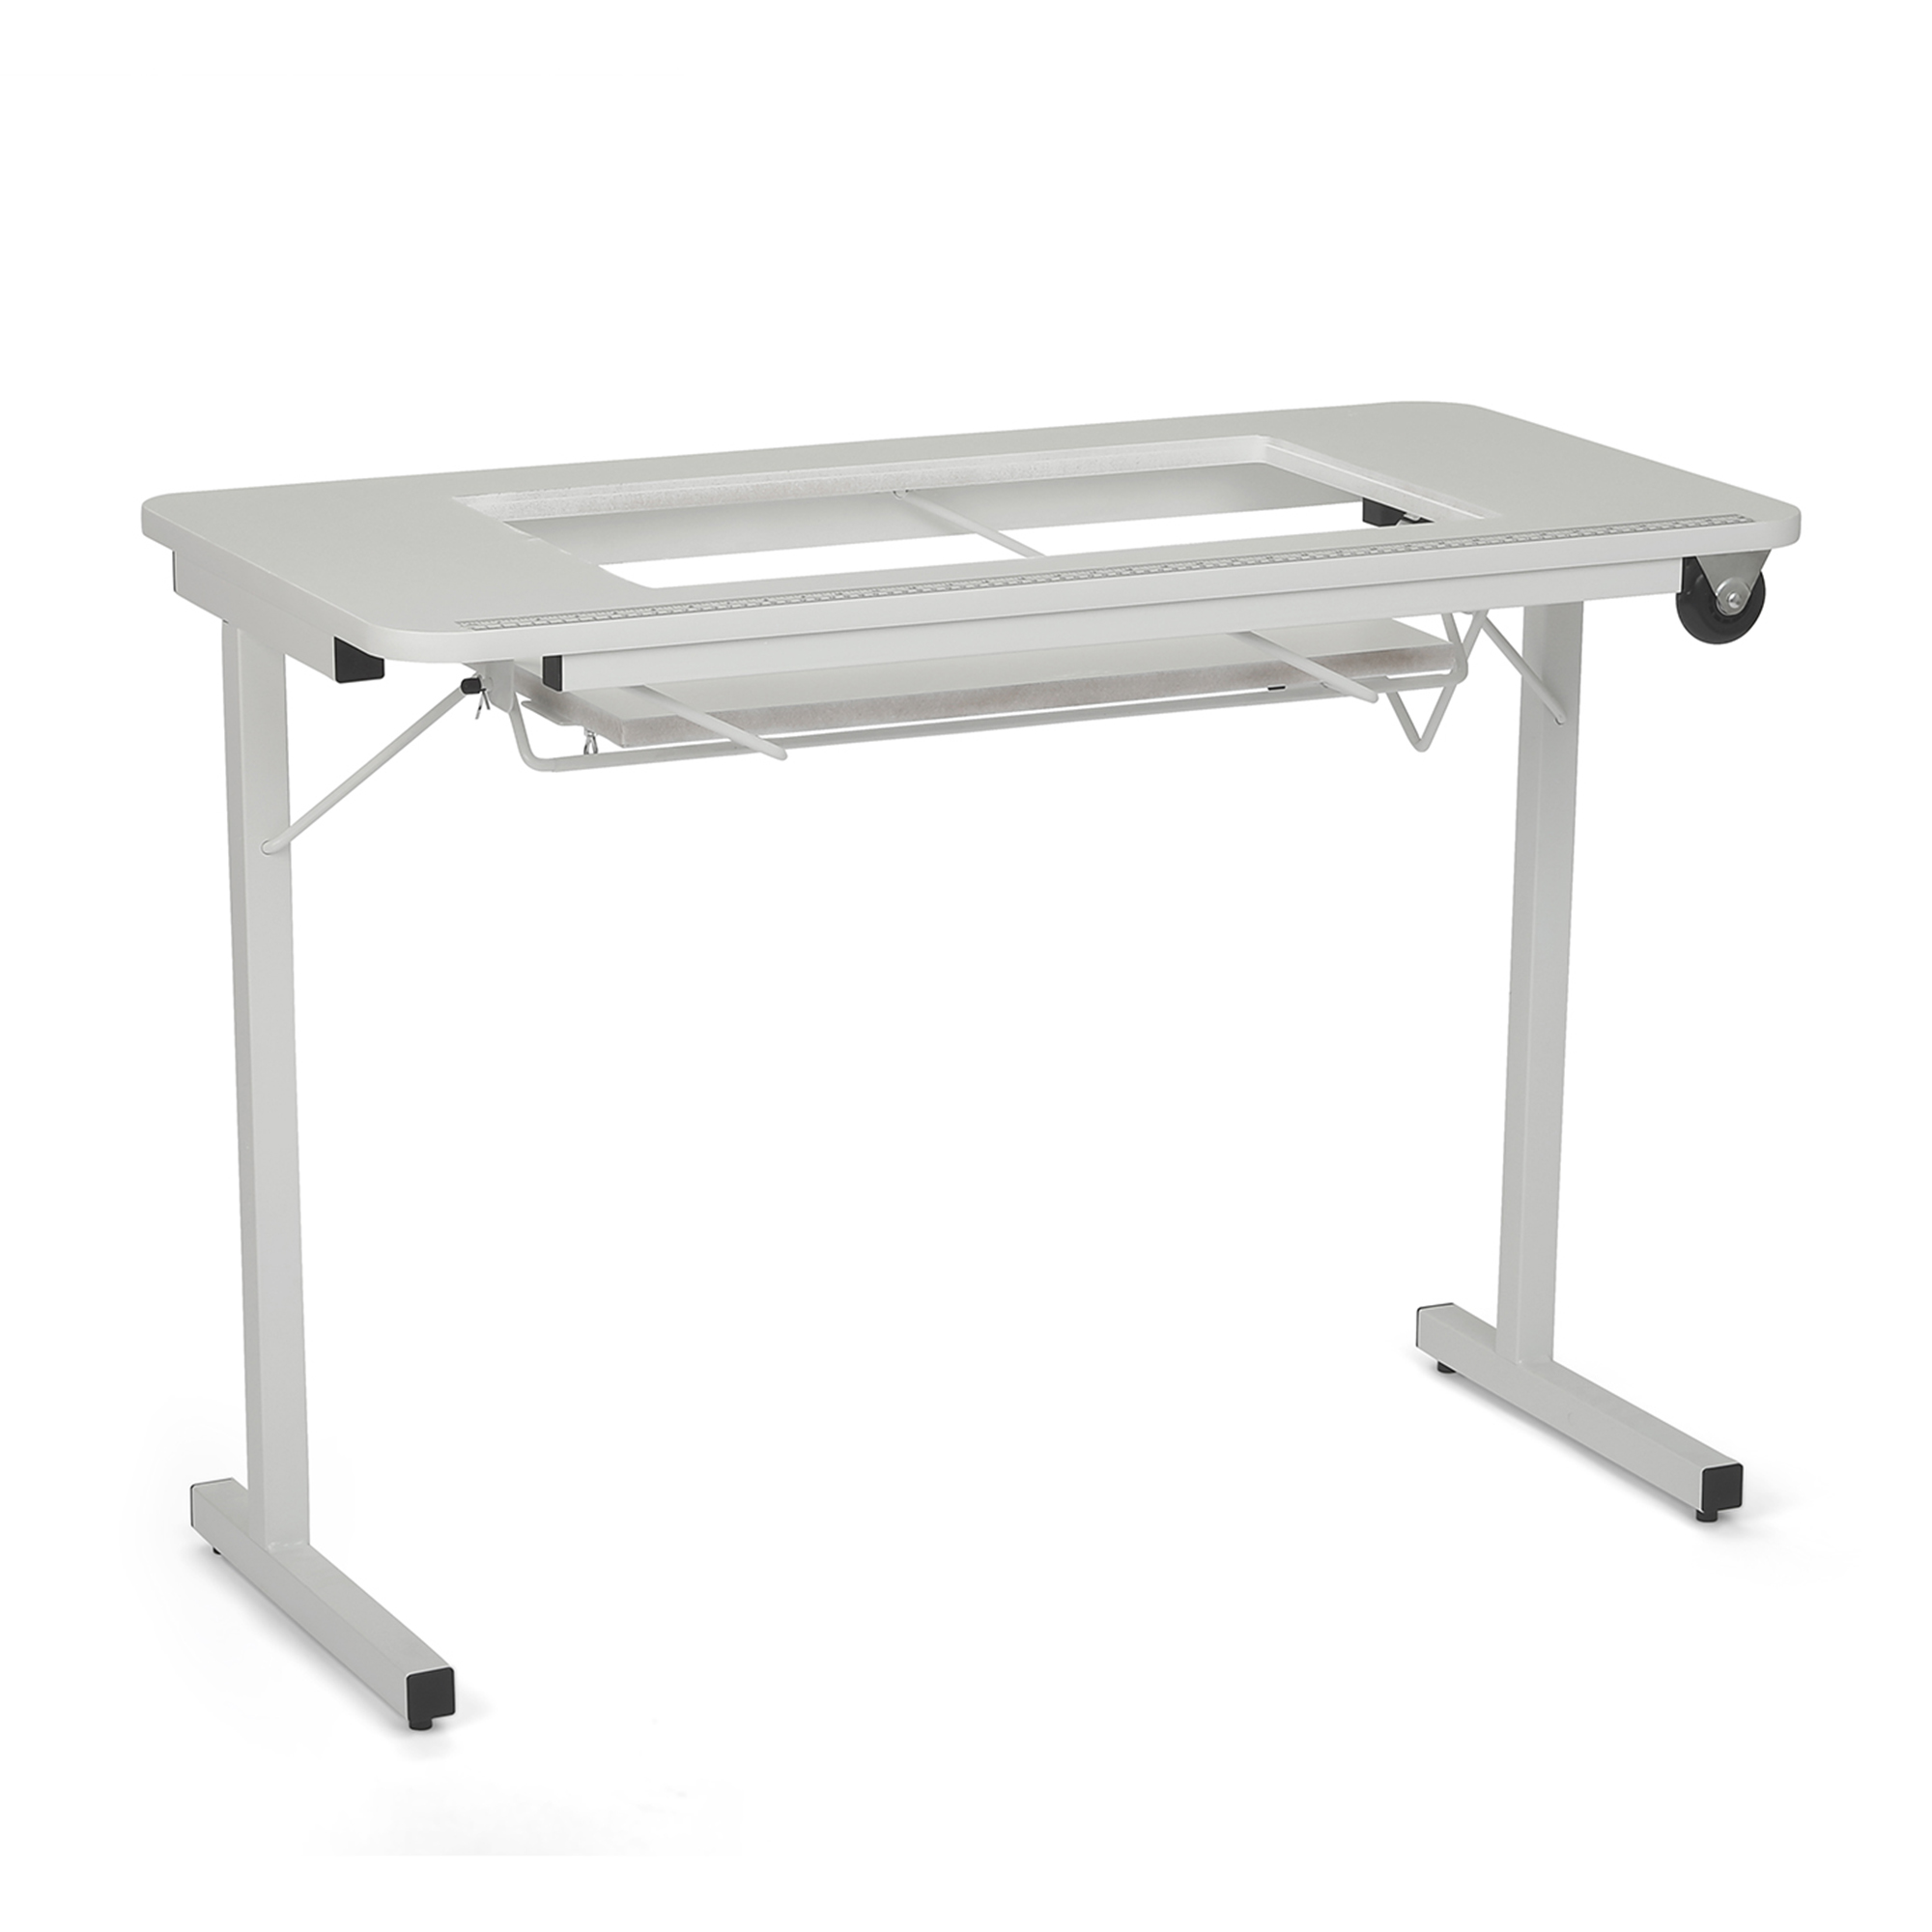 Arrow Gidget Folding Sewing and Craft Table II, Clean White